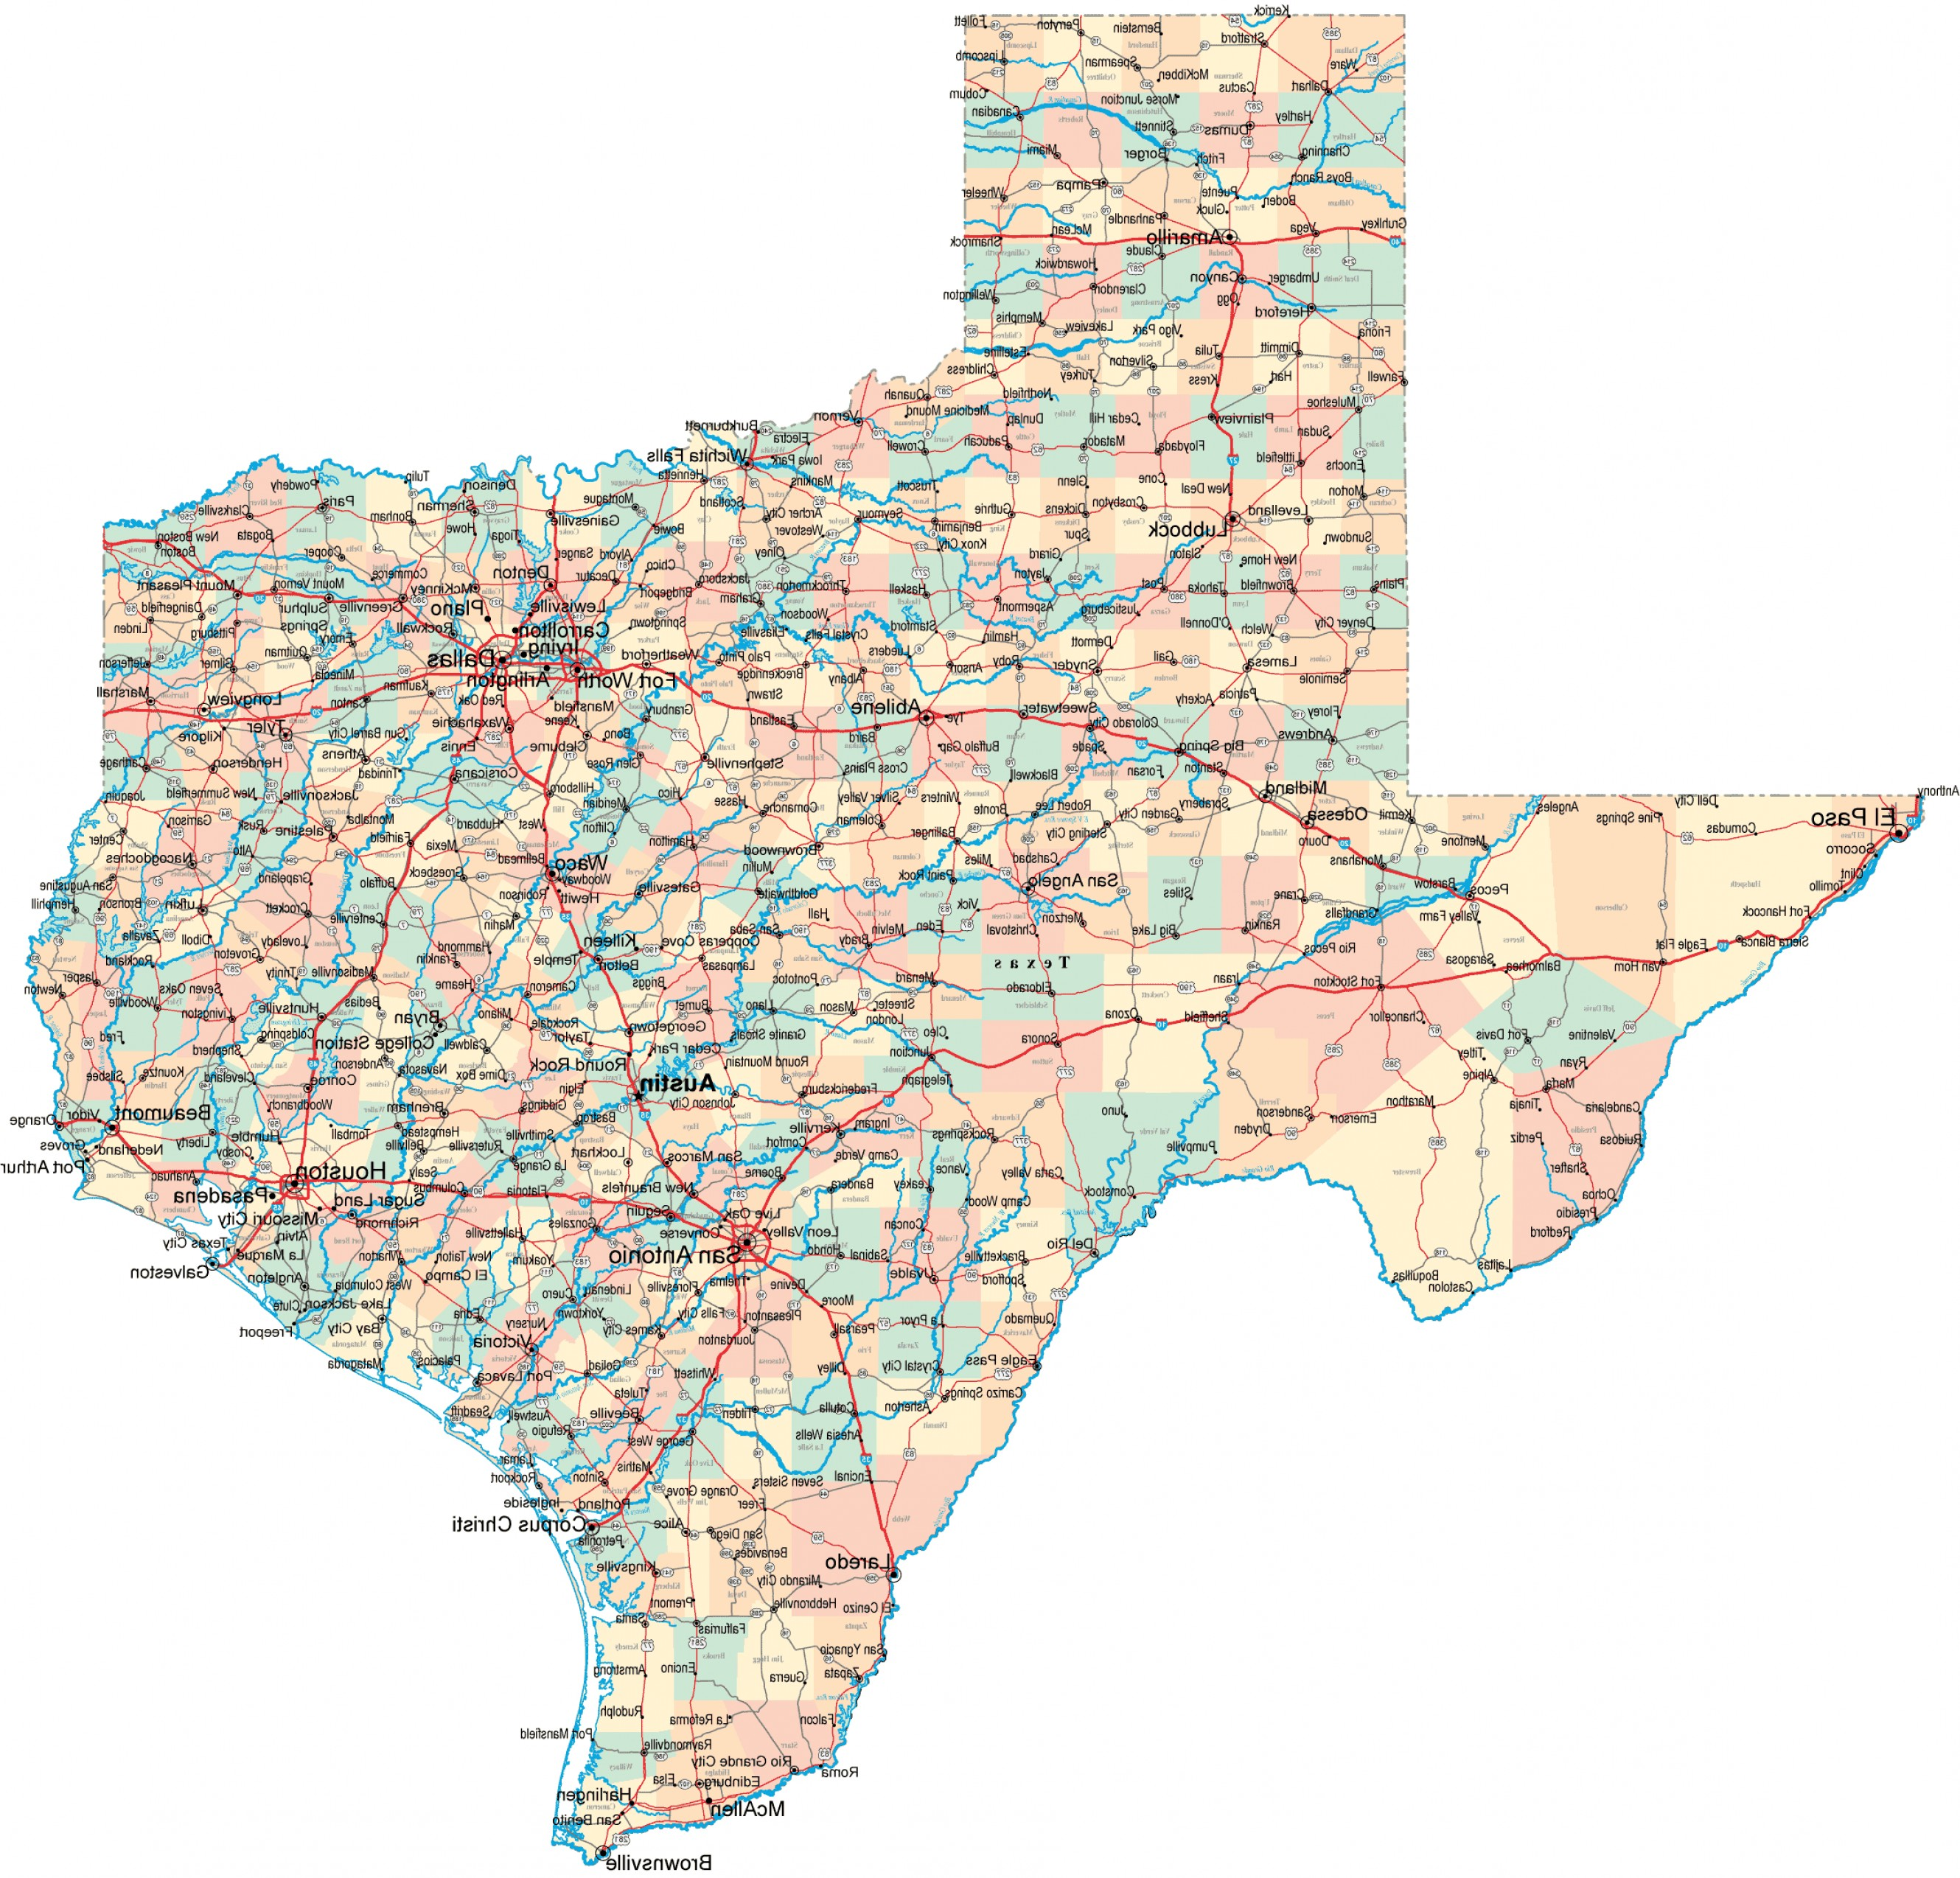 Texas Counties Map Vector: Texas County Map Download Maps Map Of Texas Major Cities